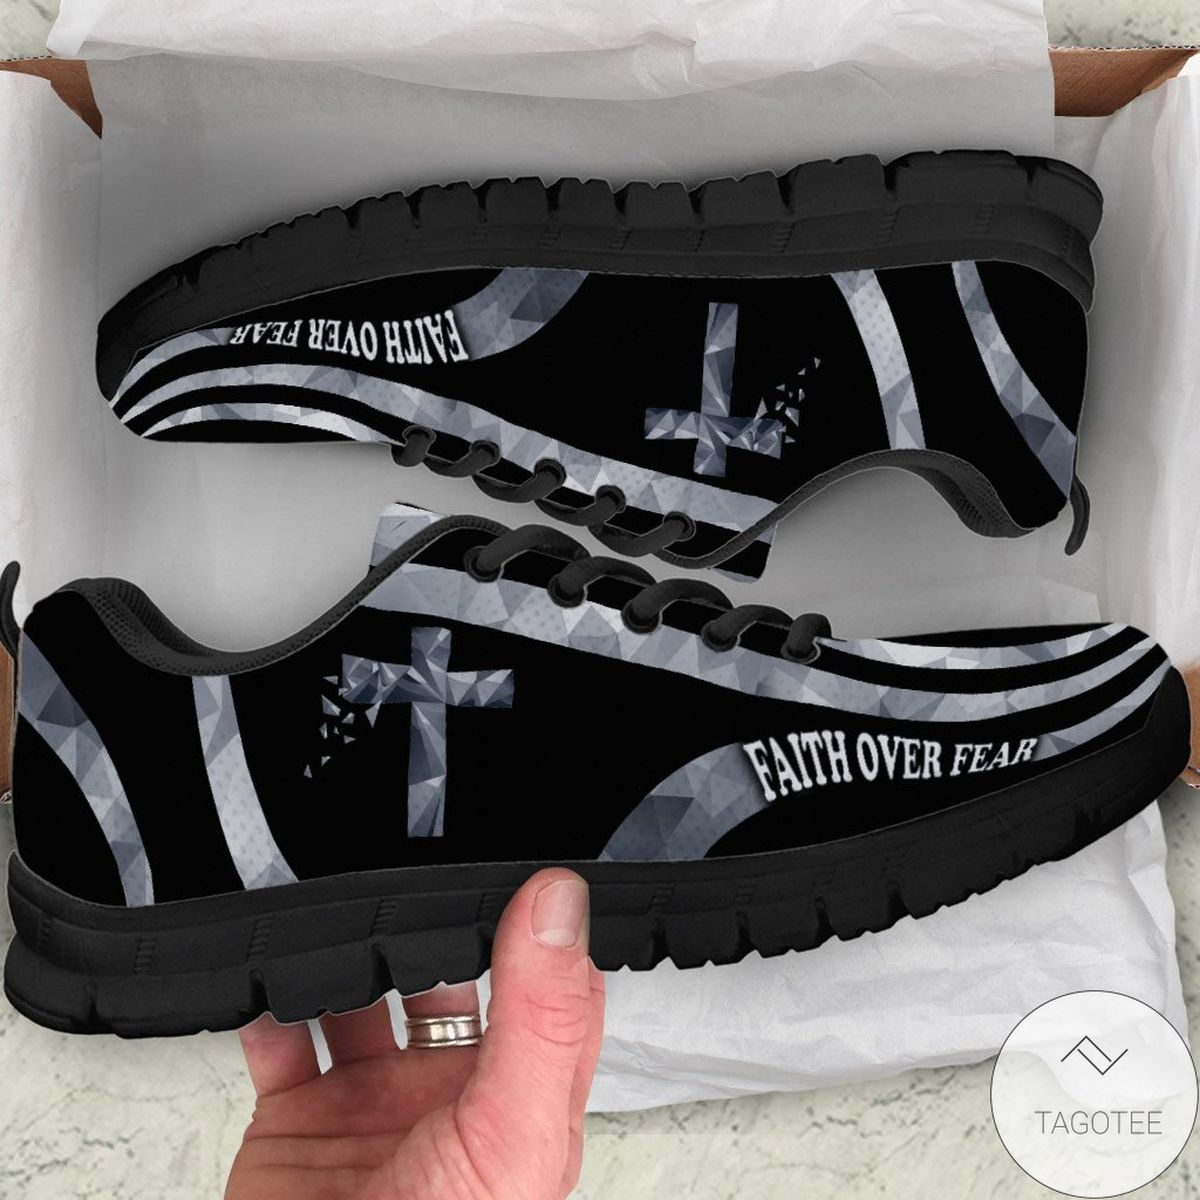 Top Rated Faith Over Fear - God Sneakers